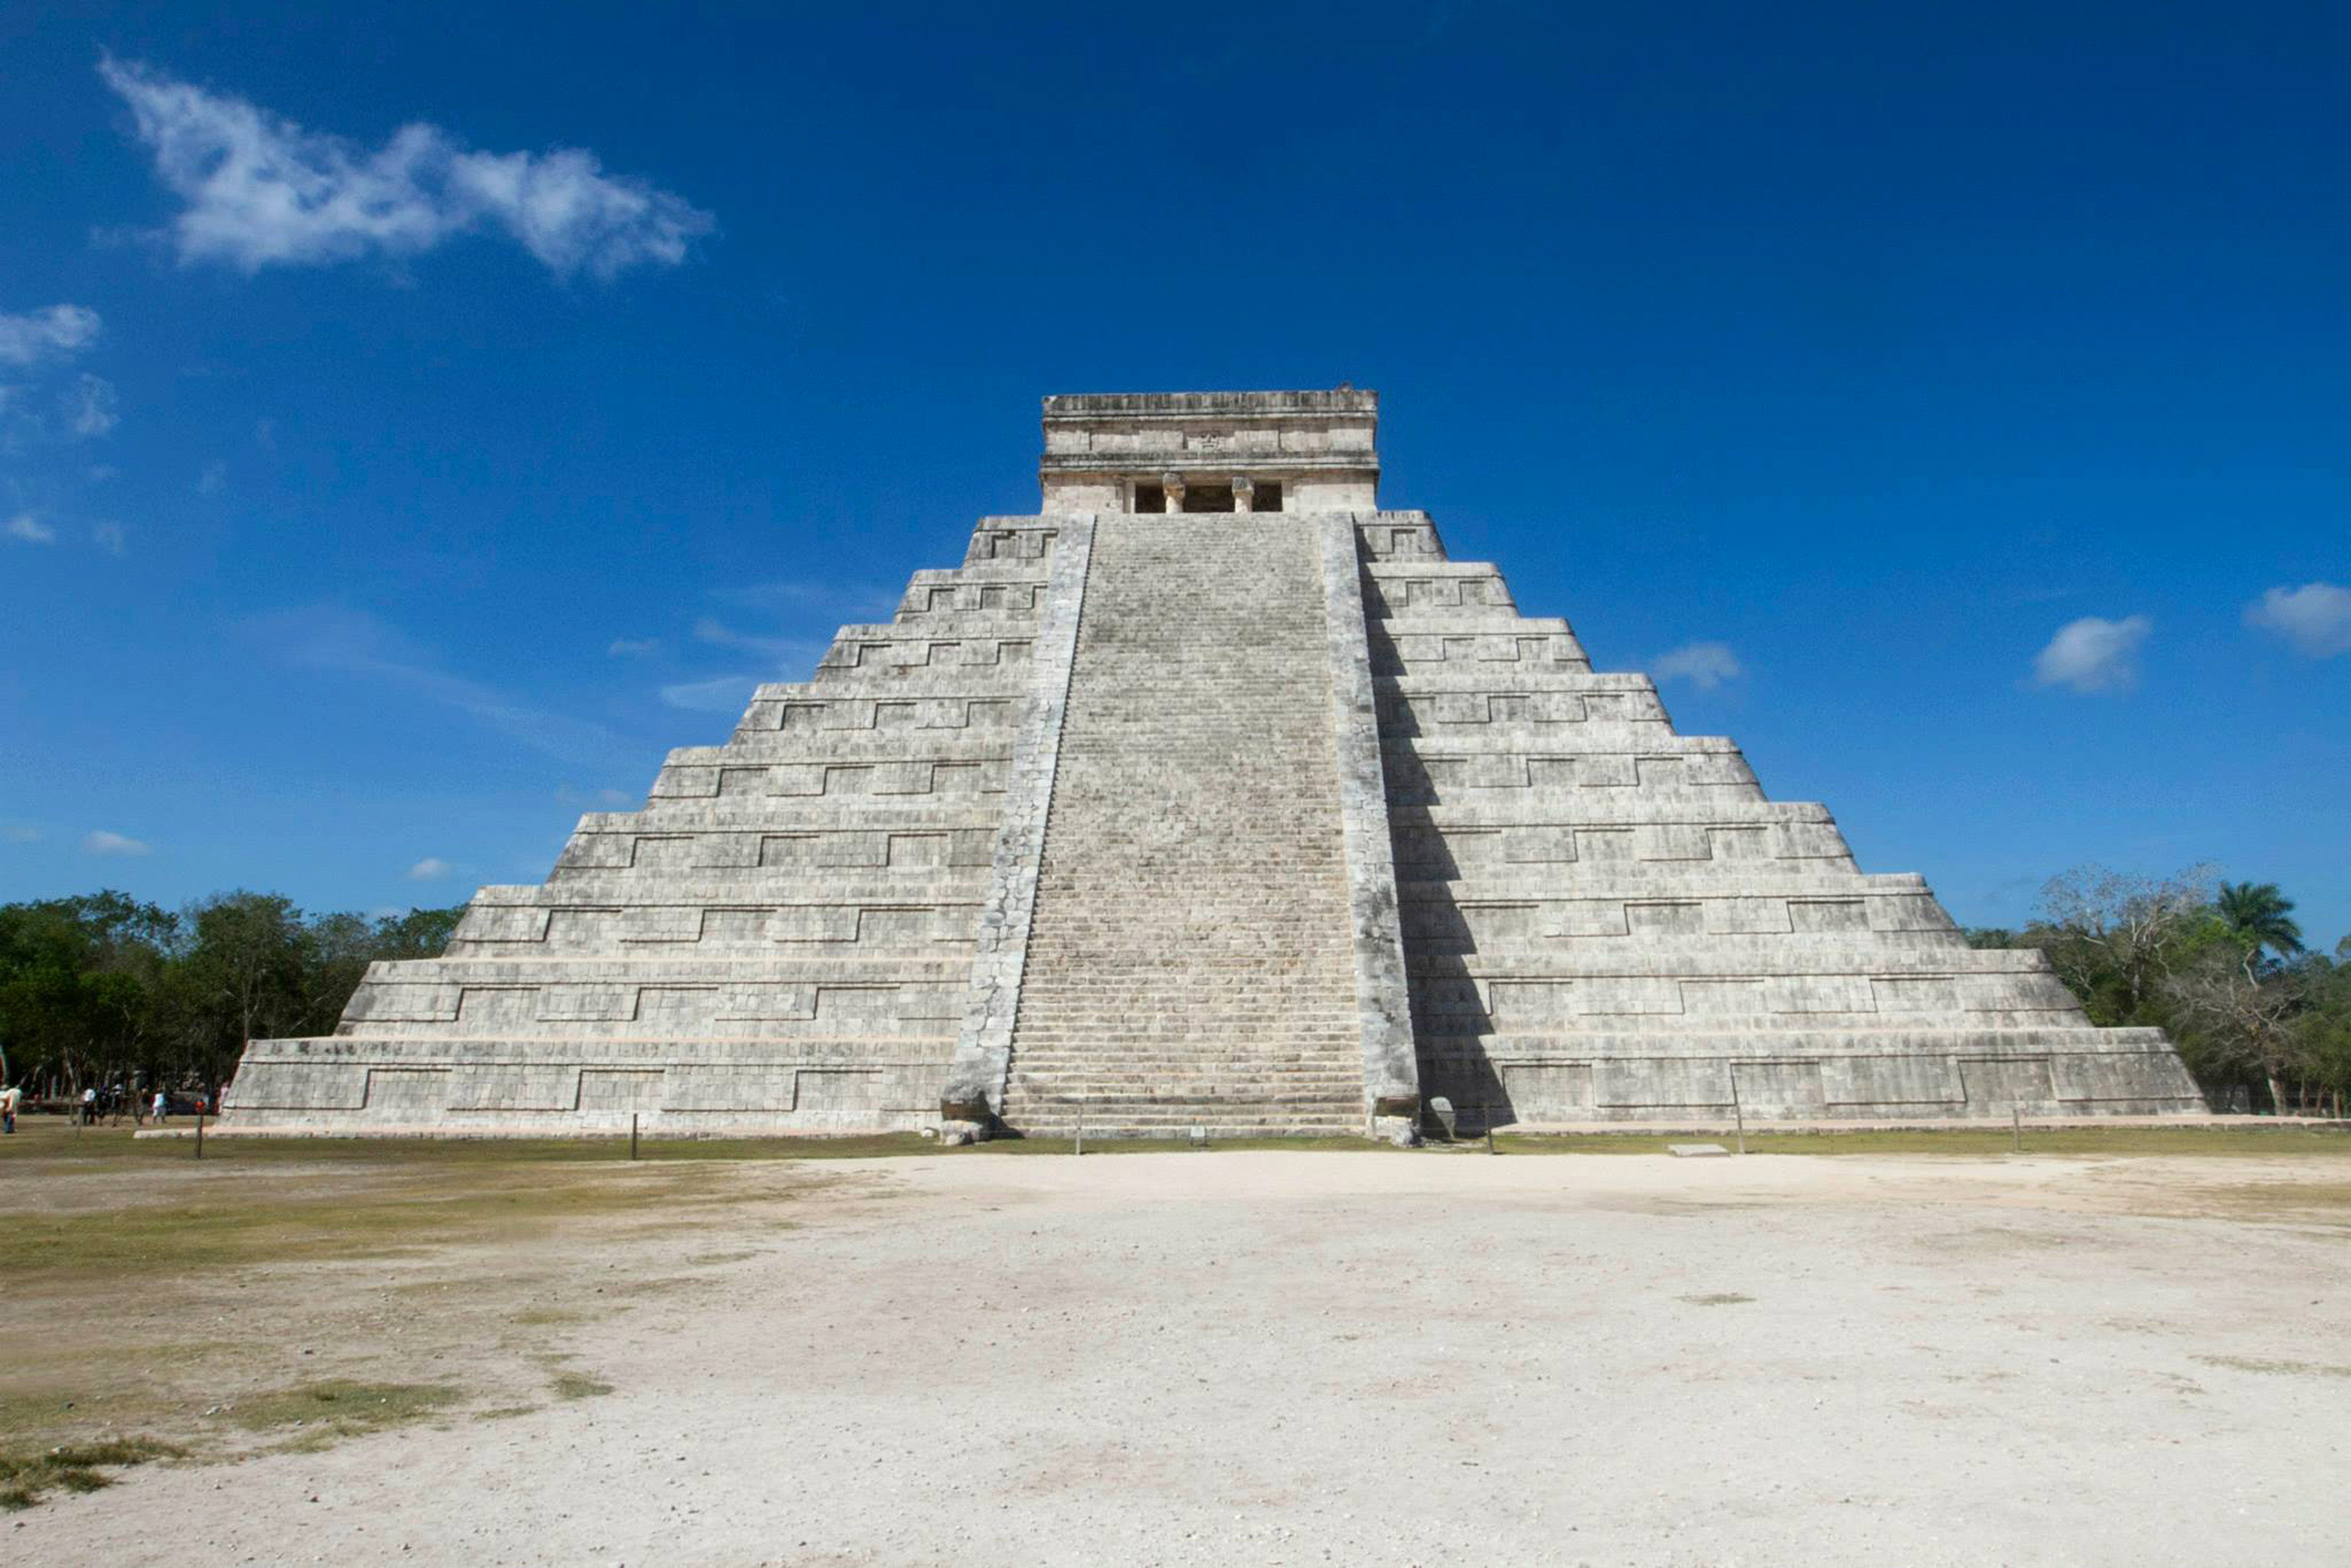 Architecture Landmarks Museums Outdoor Activities Ruins sky maya civilization monument landmark historic site archaeological site building pyramid ancient history temple ancient greek temple stone concrete